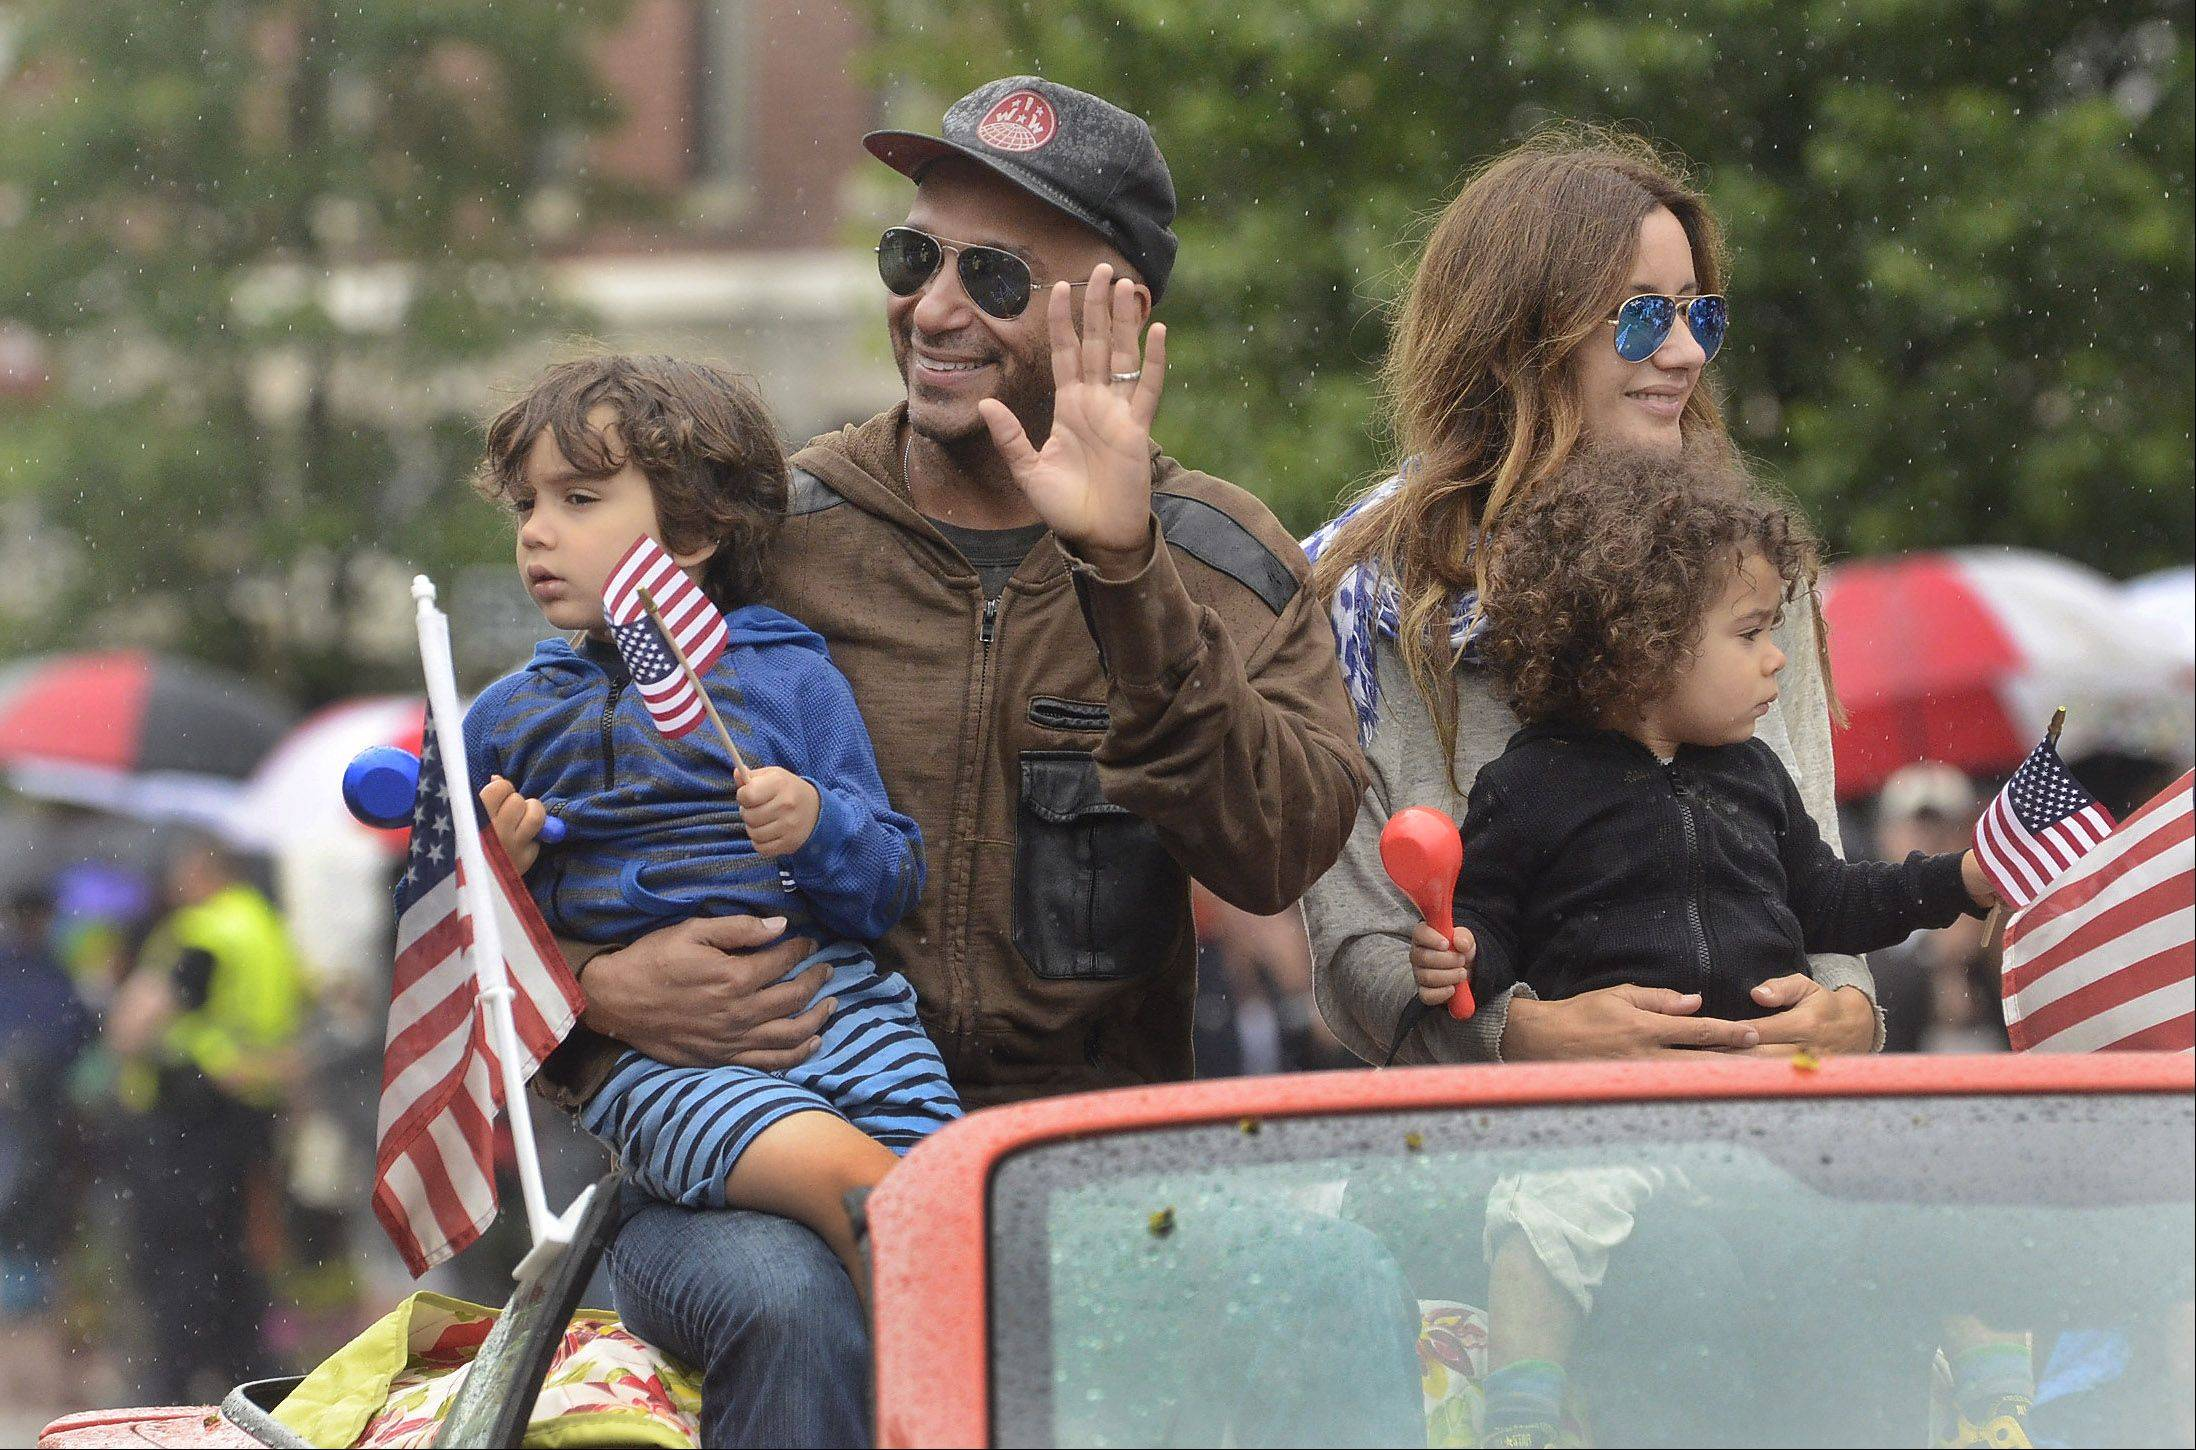 Musician Tom Morello, grand marshal of Saturday's Libertyville Days Parade, and his family wave to the crowd.